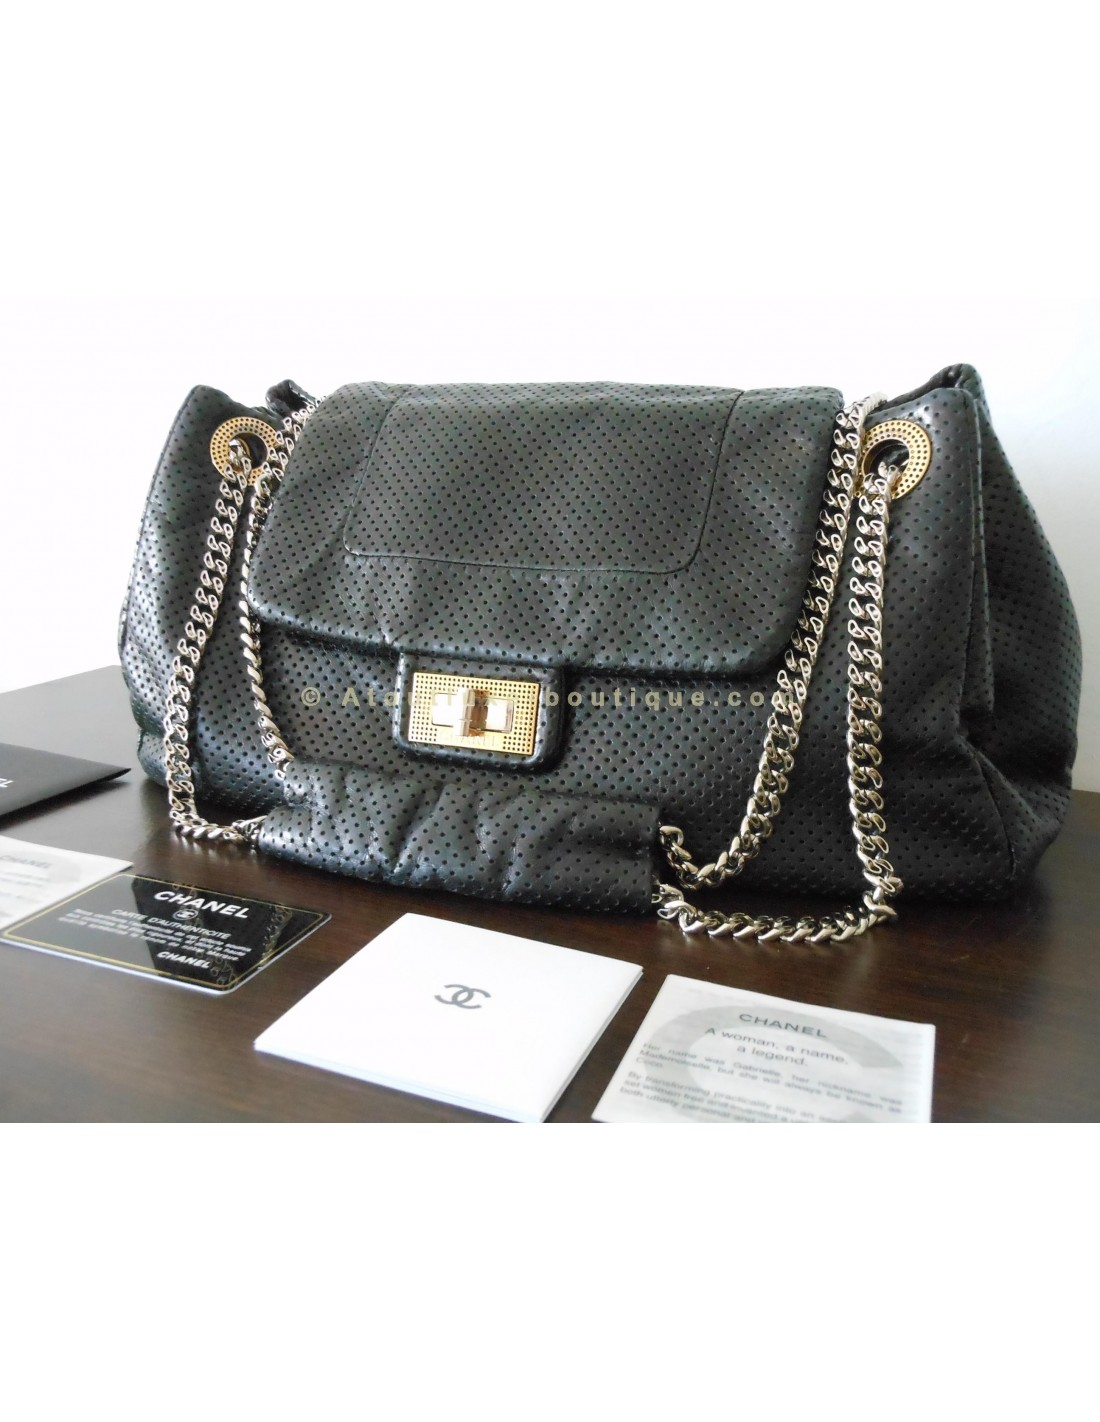 Sac chanel jumbo noir atoutluxe boutique for Sac chanel interieur